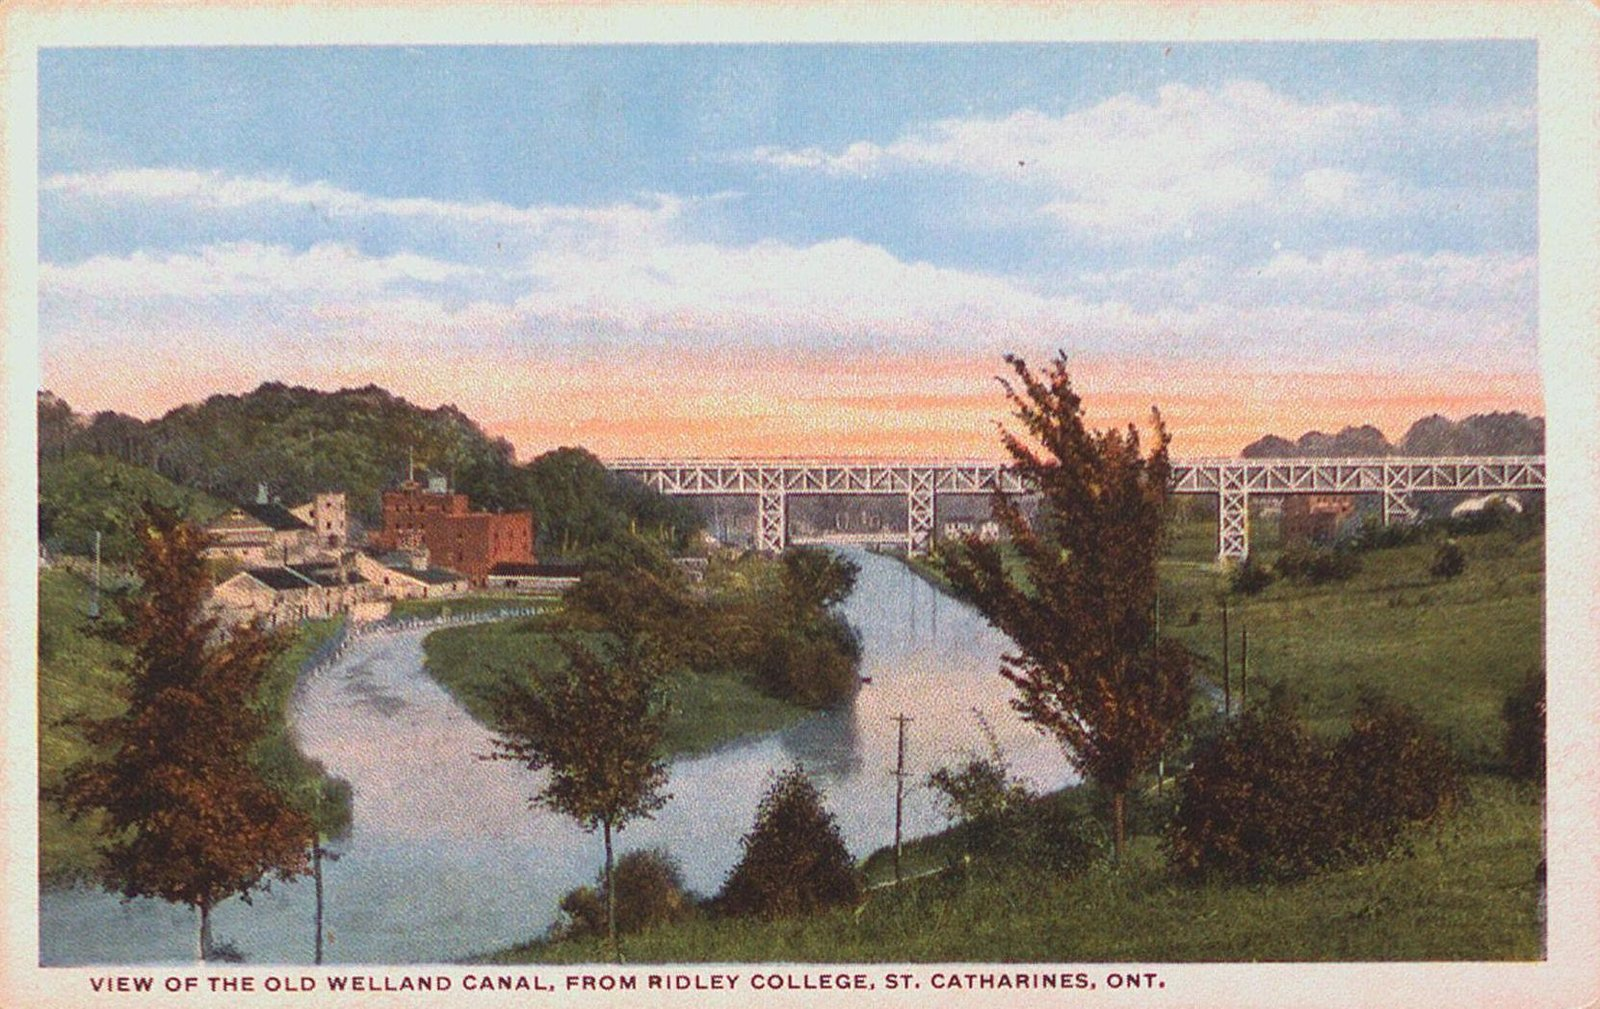 The Old Welland Canal from Ridley College